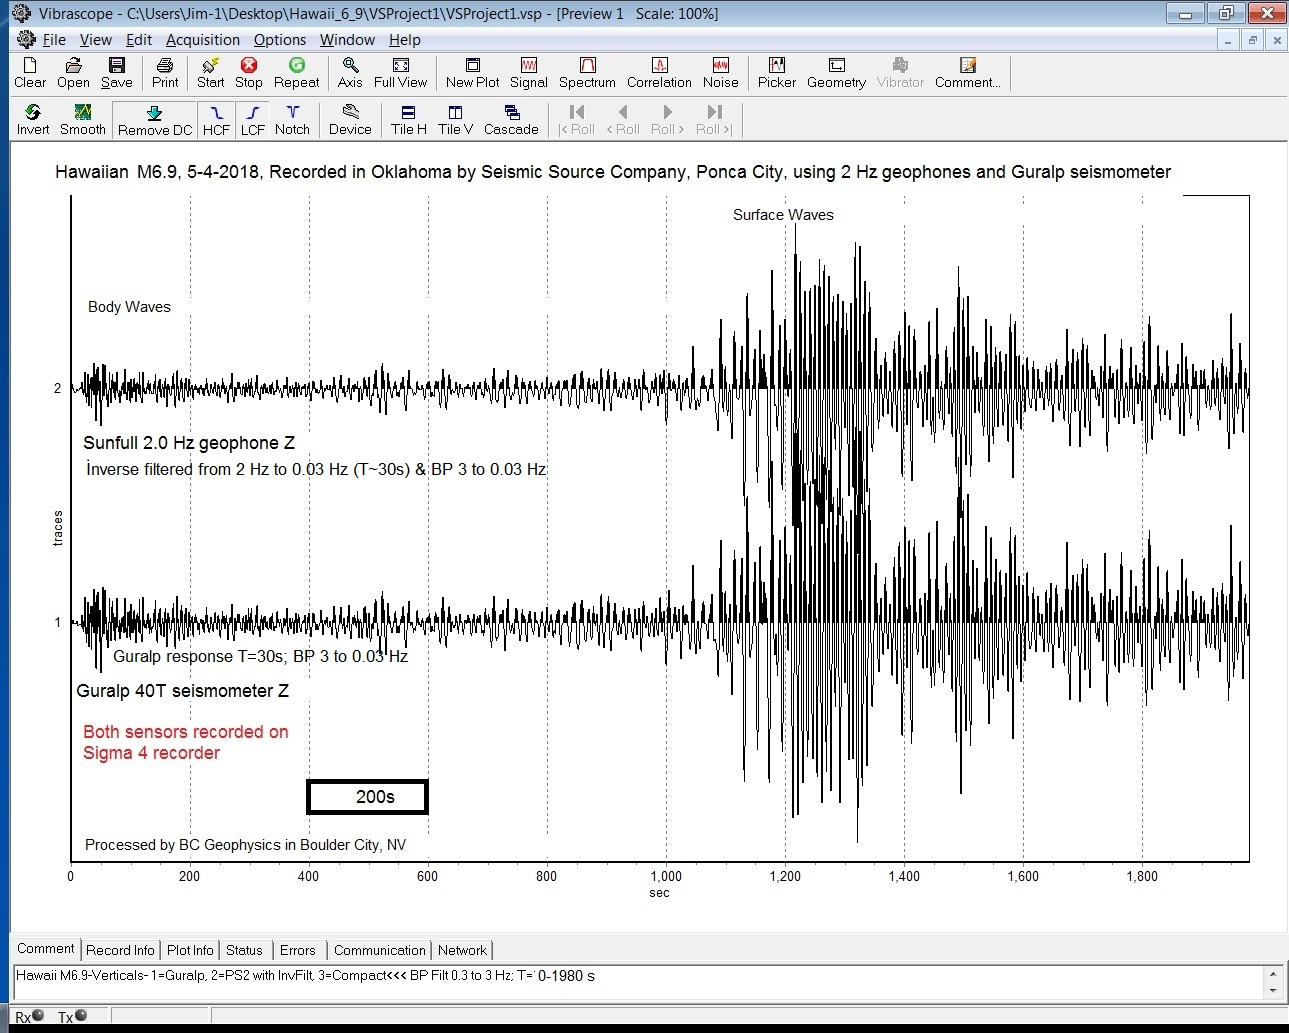 M6.9 recorded with geophones in NV & OK